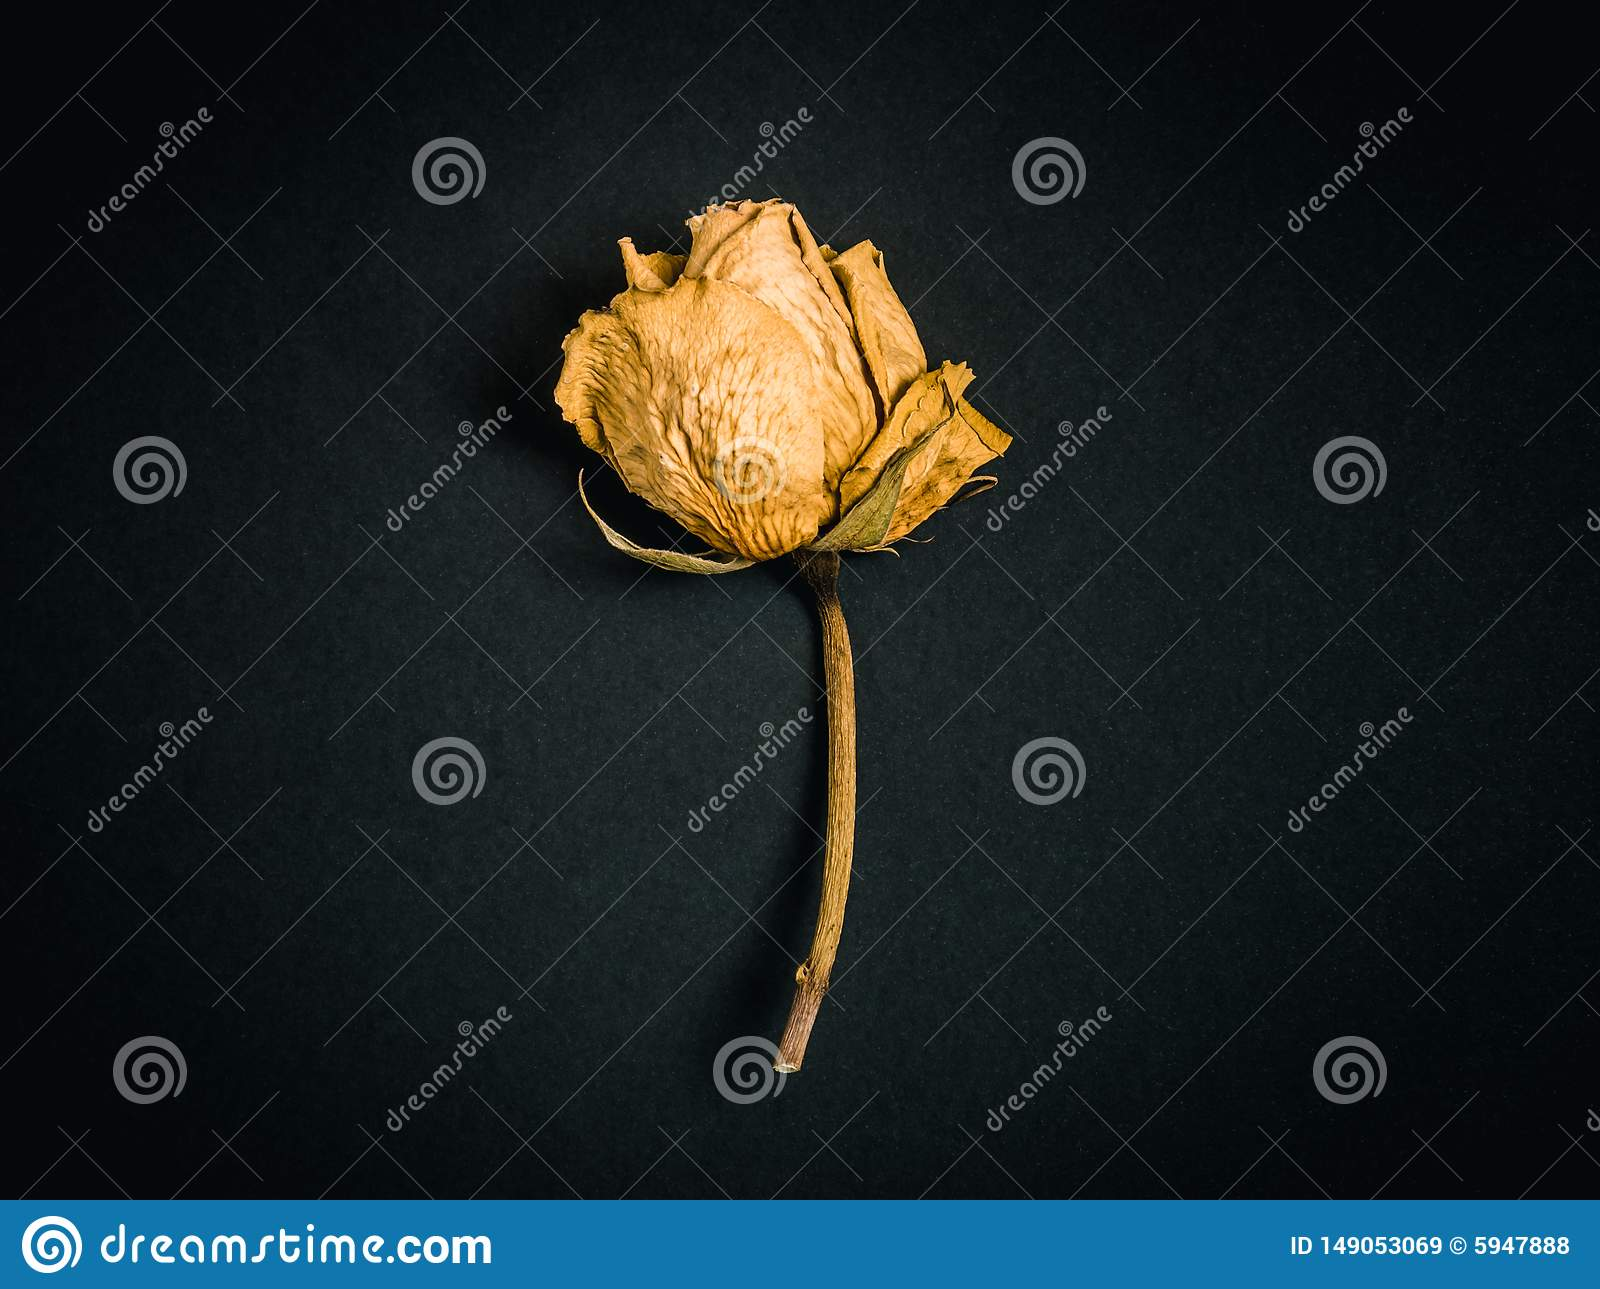 Yellow rose. Dried flower